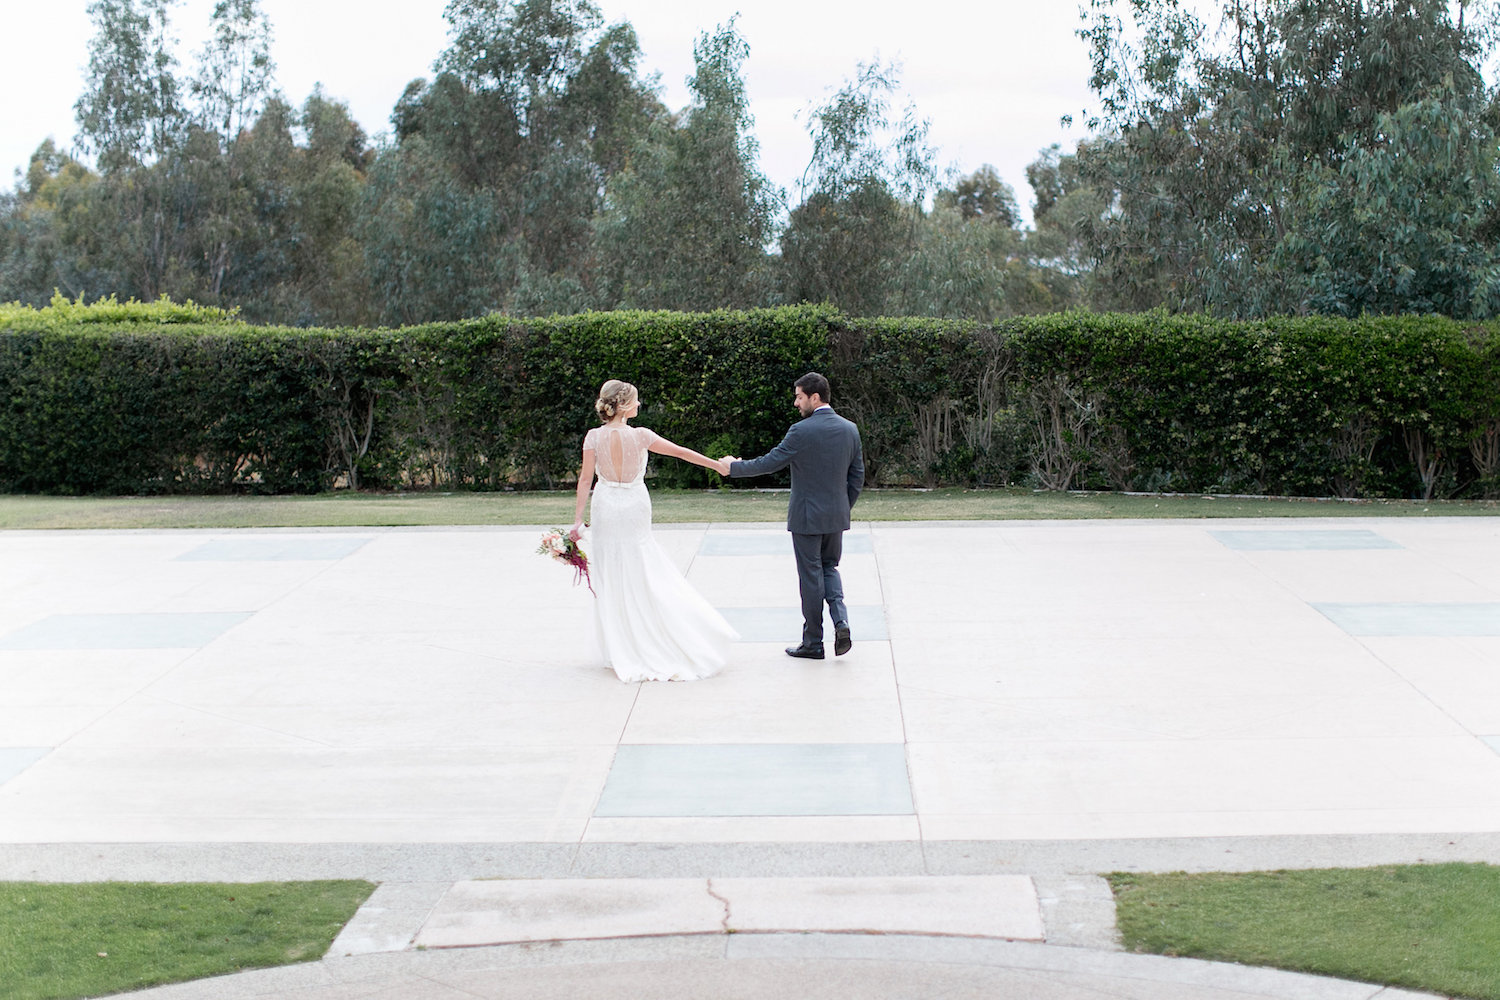 """Wedding first dance at the Park Hyatt Aviara.          96               Normal   0           false   false   false     EN-US   X-NONE   X-NONE                                                                                                                                                                                                                                                                                                                                                                                                                                                                                                                                                                                                                                                                                                                                                                                                                                                                                  /* Style Definitions */ table.MsoNormalTable {mso-style-name:""""Table Normal""""; mso-tstyle-rowband-size:0; mso-tstyle-colband-size:0; mso-style-noshow:yes; mso-style-priority:99; mso-style-parent:""""""""; mso-padding-alt:0in 5.4pt 0in 5.4pt; mso-para-margin:0in; mso-para-margin-bottom:.0001pt; mso-pagination:widow-orphan; font-size:12.0pt; font-family:Calibri; mso-ascii-font-family:Calibri; mso-ascii-theme-font:minor-latin; mso-hansi-font-family:Calibri; mso-hansi-theme-font:minor-latin;}      Marsala & blush wedding inspiration by San Diego florist, Compass Floral."""